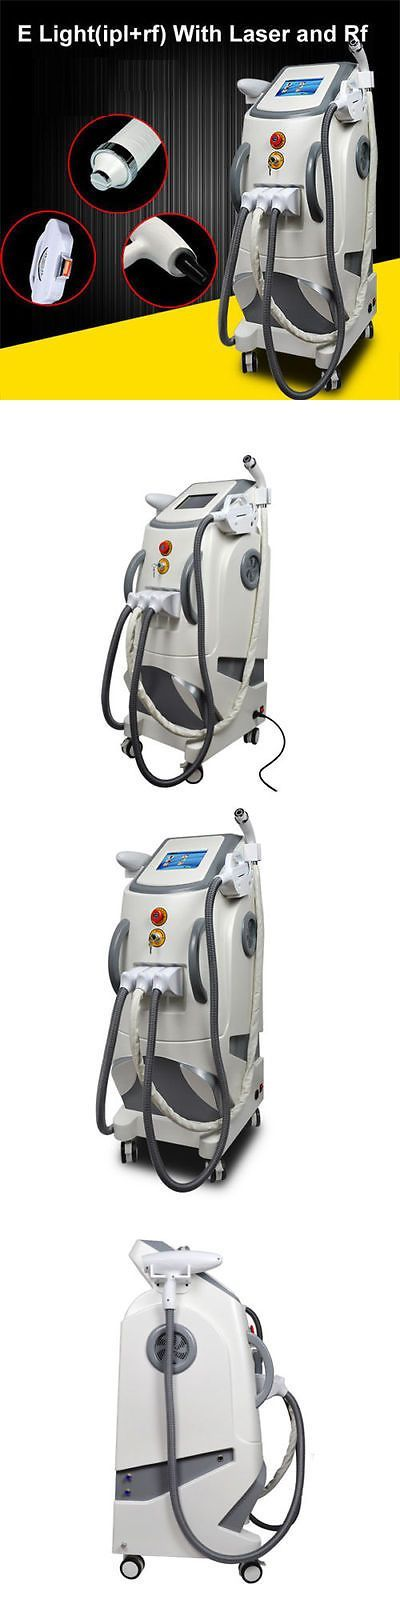 Tattoo Removal Machines: Permanent Laser Ipl Machine For Hair, Vein, Wrinkle And Tattoo Removal Rf System BUY IT NOW ONLY: $4500.0